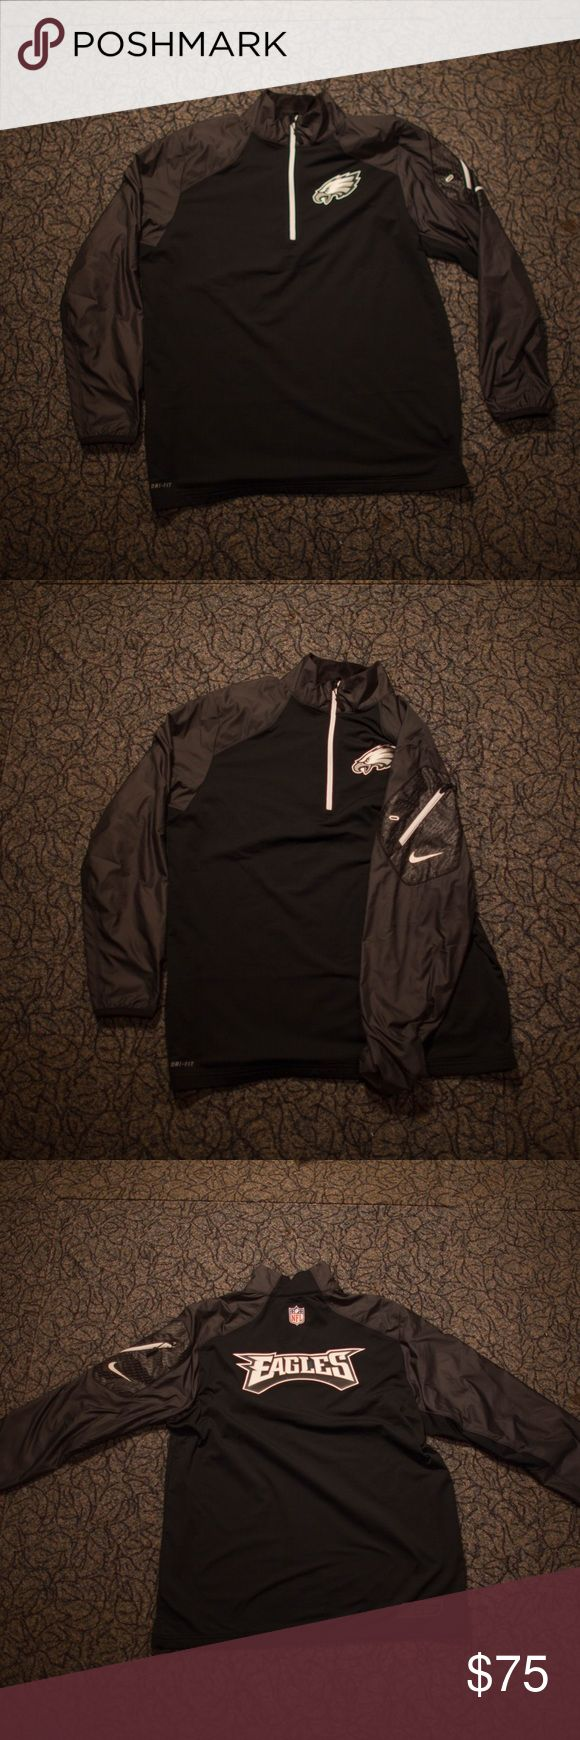 Nike Official Philadelphia Eagles Jacket Official NFL On Field Nike Jacket, size large. Worn once. Water proof and features side zipper pocket. Perfect for the fall! Nike Jackets & Coats Performance Jackets